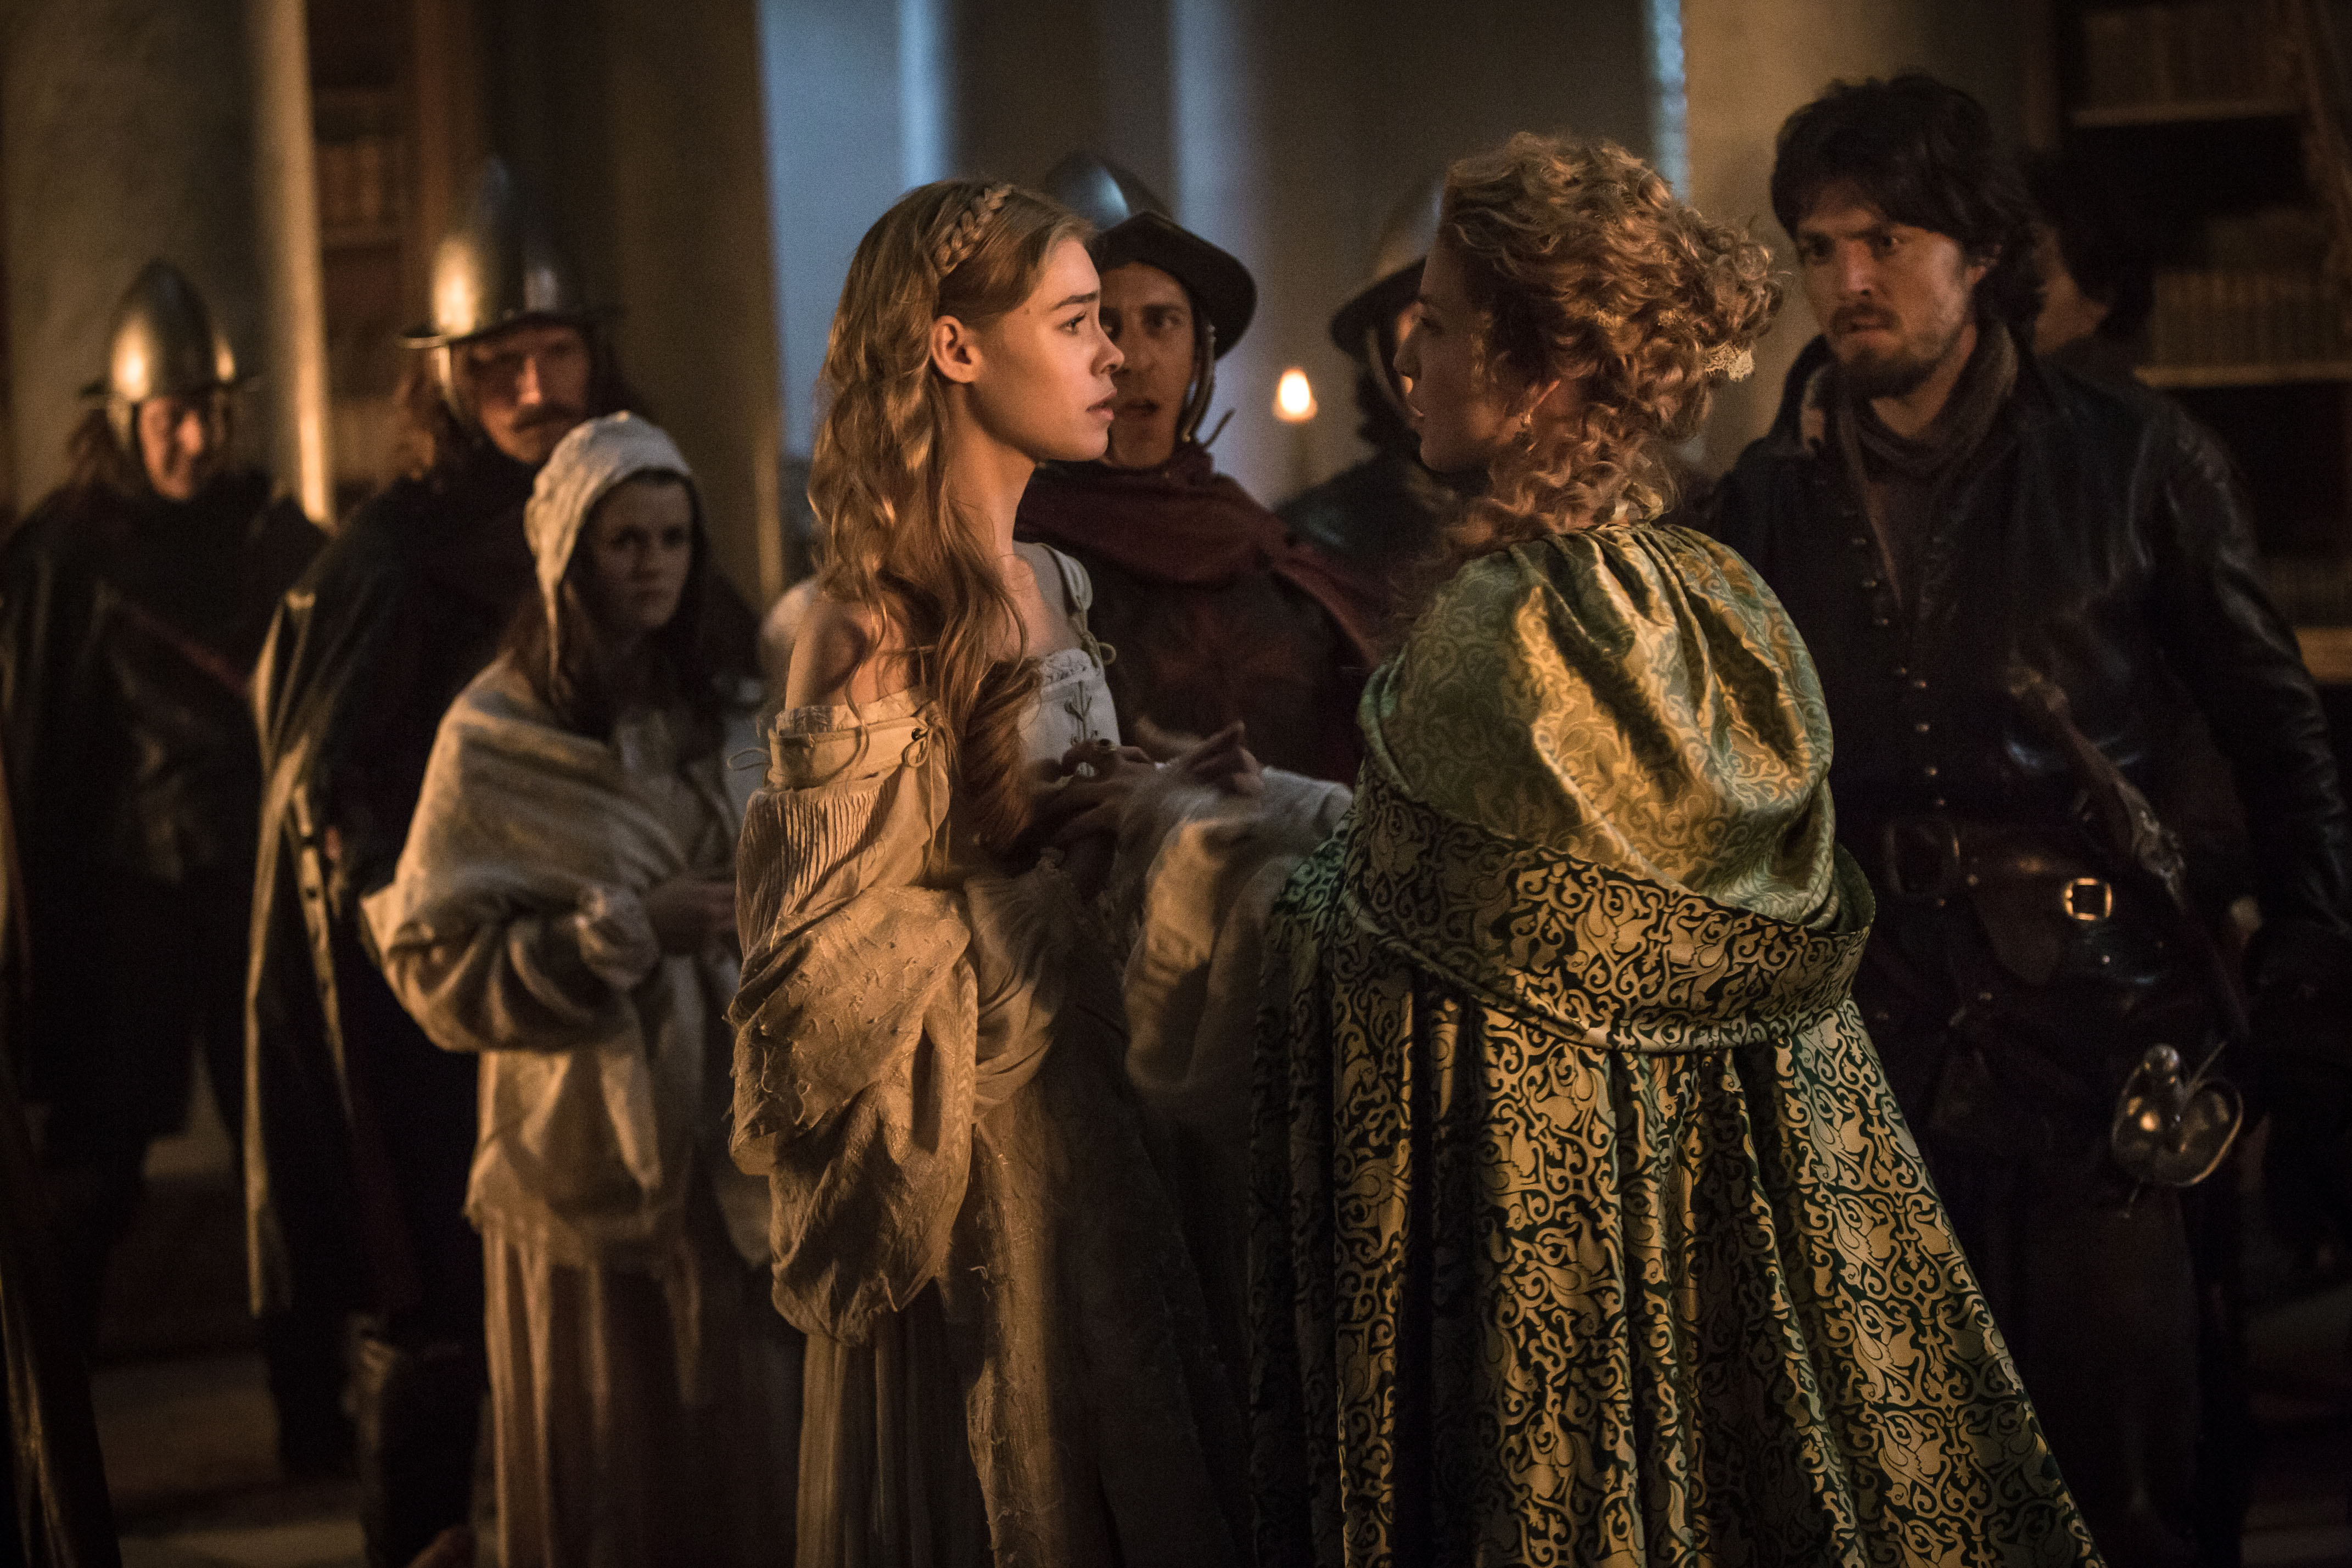 Los Mosqueteros (serie BBC) The-Musketeers-BBC-image-the-musketeers-bbc-36646741-4284-2856